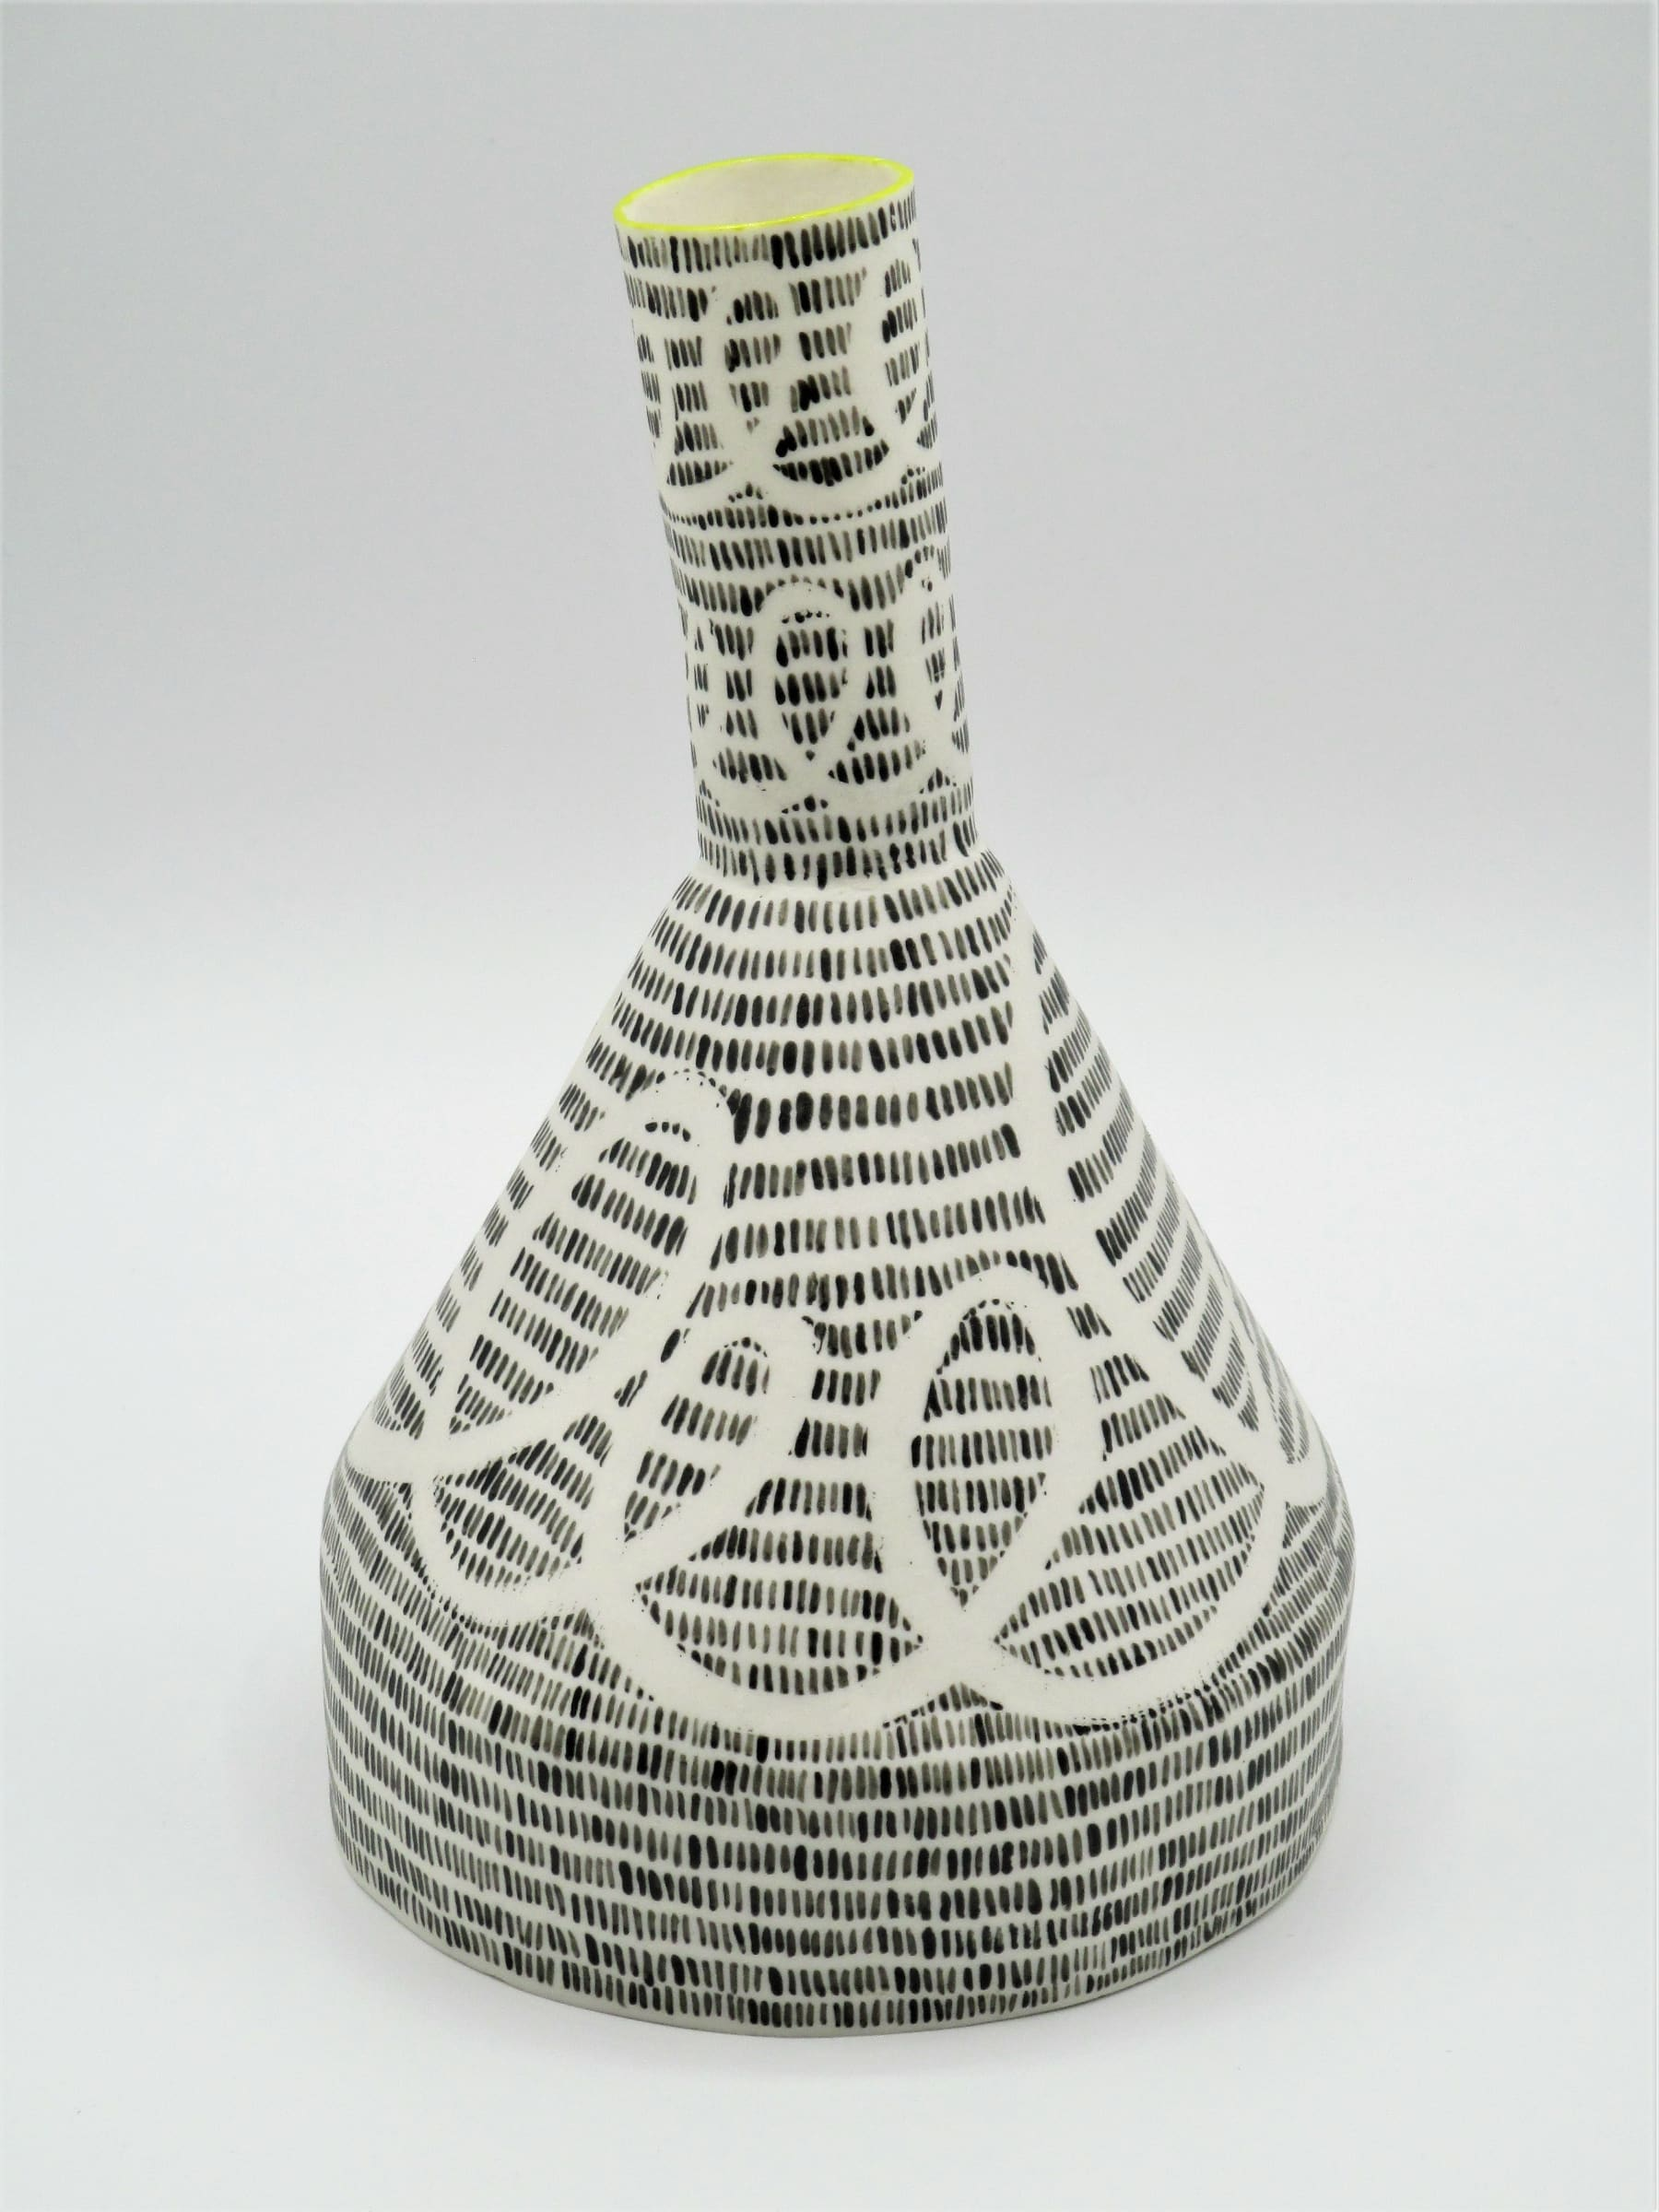 """<span class=""""link fancybox-details-link""""><a href=""""/artists/226-jane-muende/works/7156-jane-muende-conical-bottle-with-drawn-helter-skelter-and-lines-2020/"""">View Detail Page</a></span><div class=""""artist""""><strong>Jane Muende</strong></div> <div class=""""title""""><em>Conical bottle with drawn helter skelter and lines in wax crayon, lime green rim.</em>, 2020</div> <div class=""""medium"""">Hand built in paper porcelain</div> <div class=""""dimensions"""">24 x 13 cm</div><div class=""""copyright_line"""">Own Art: £24.50 x 10 months 0% APR</div>"""